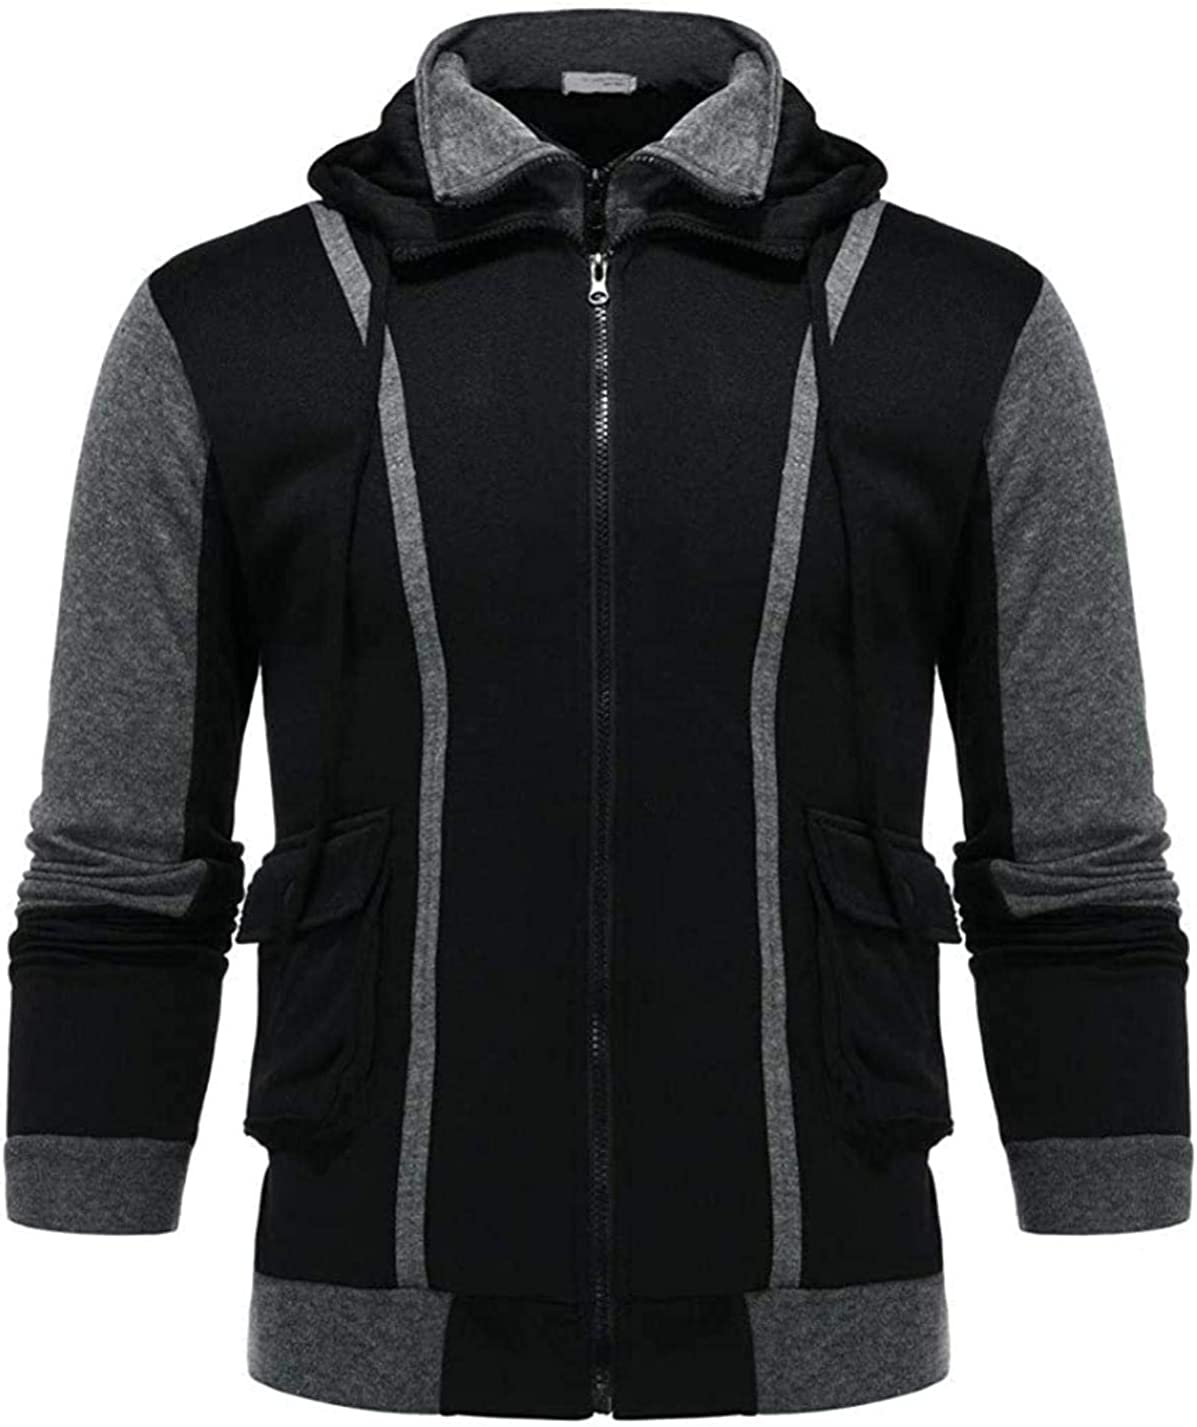 Men's Zipper Jacket Solid Hoodies Windproof Sweatshirt Free shipping anywhere in the Luxury nation Winter Co